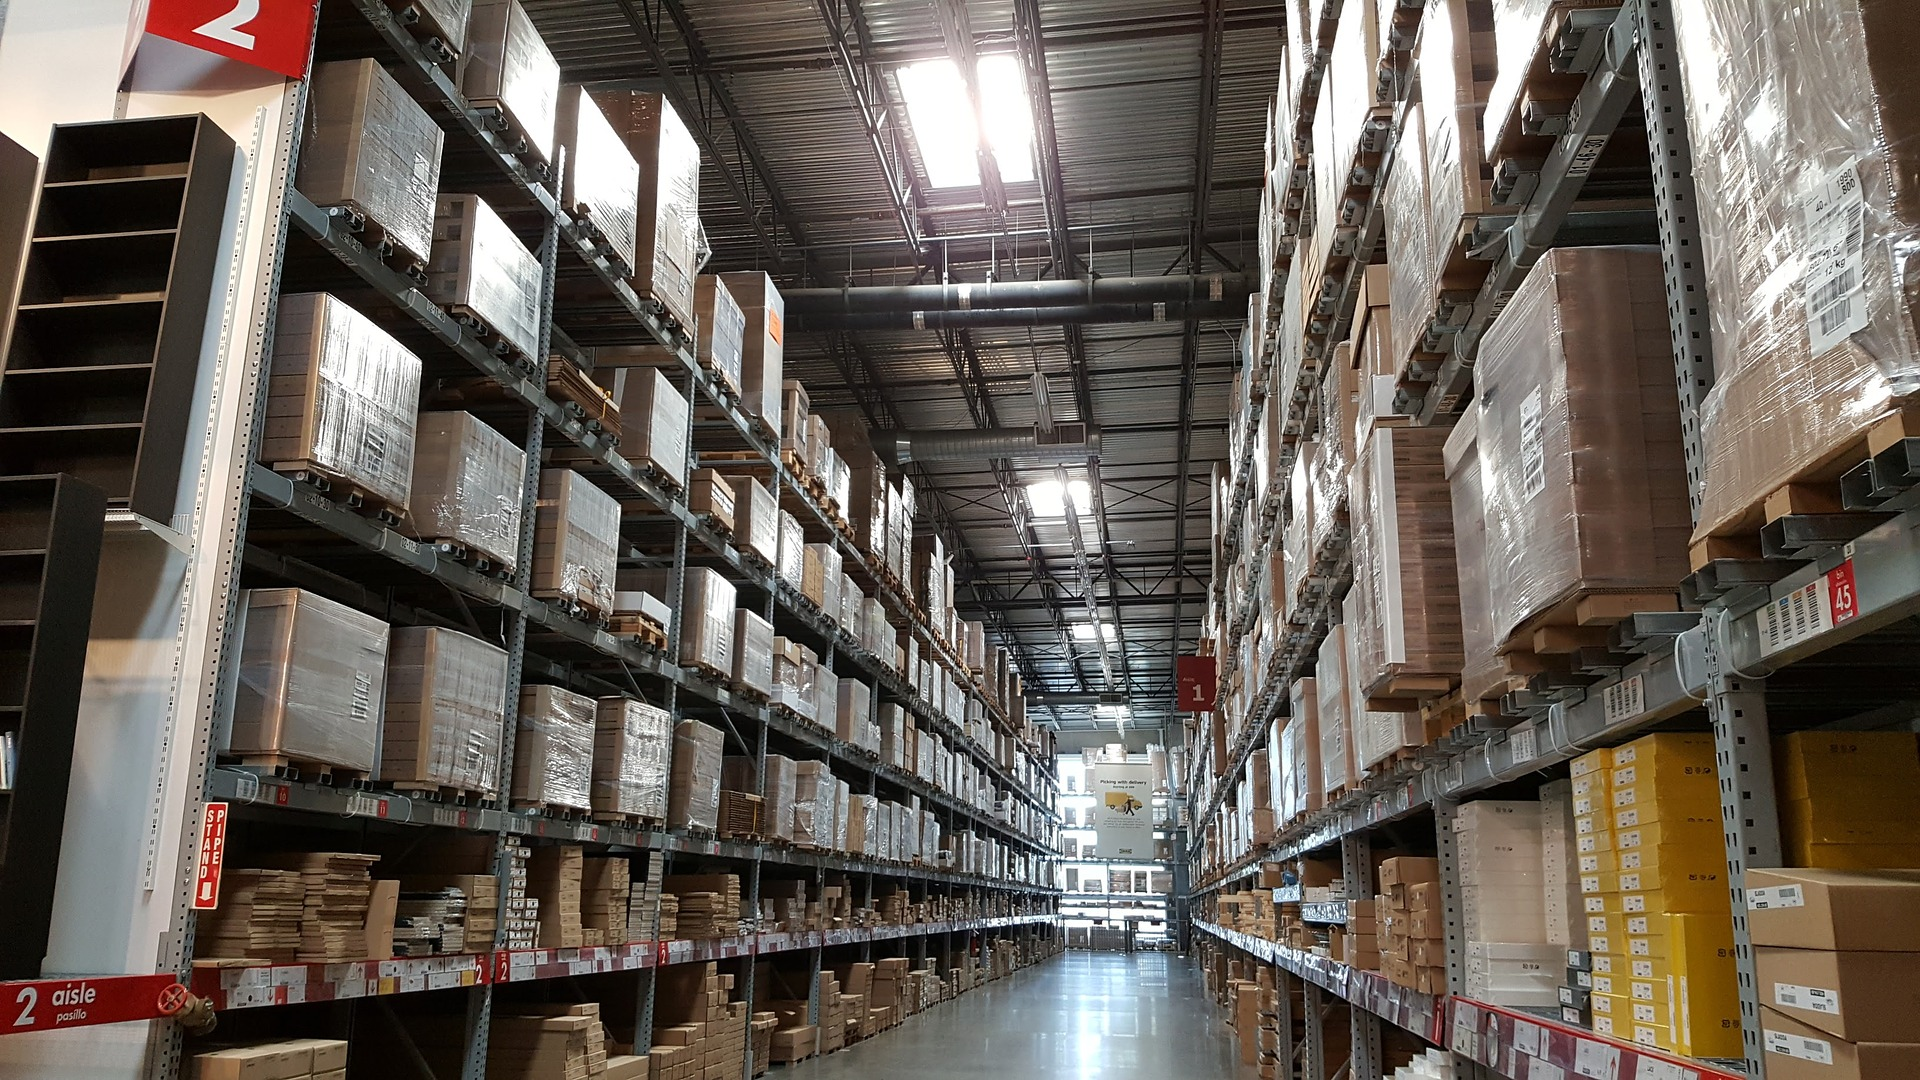 Freight Distribution Warehouse Services, Freight Shipping Warehouses